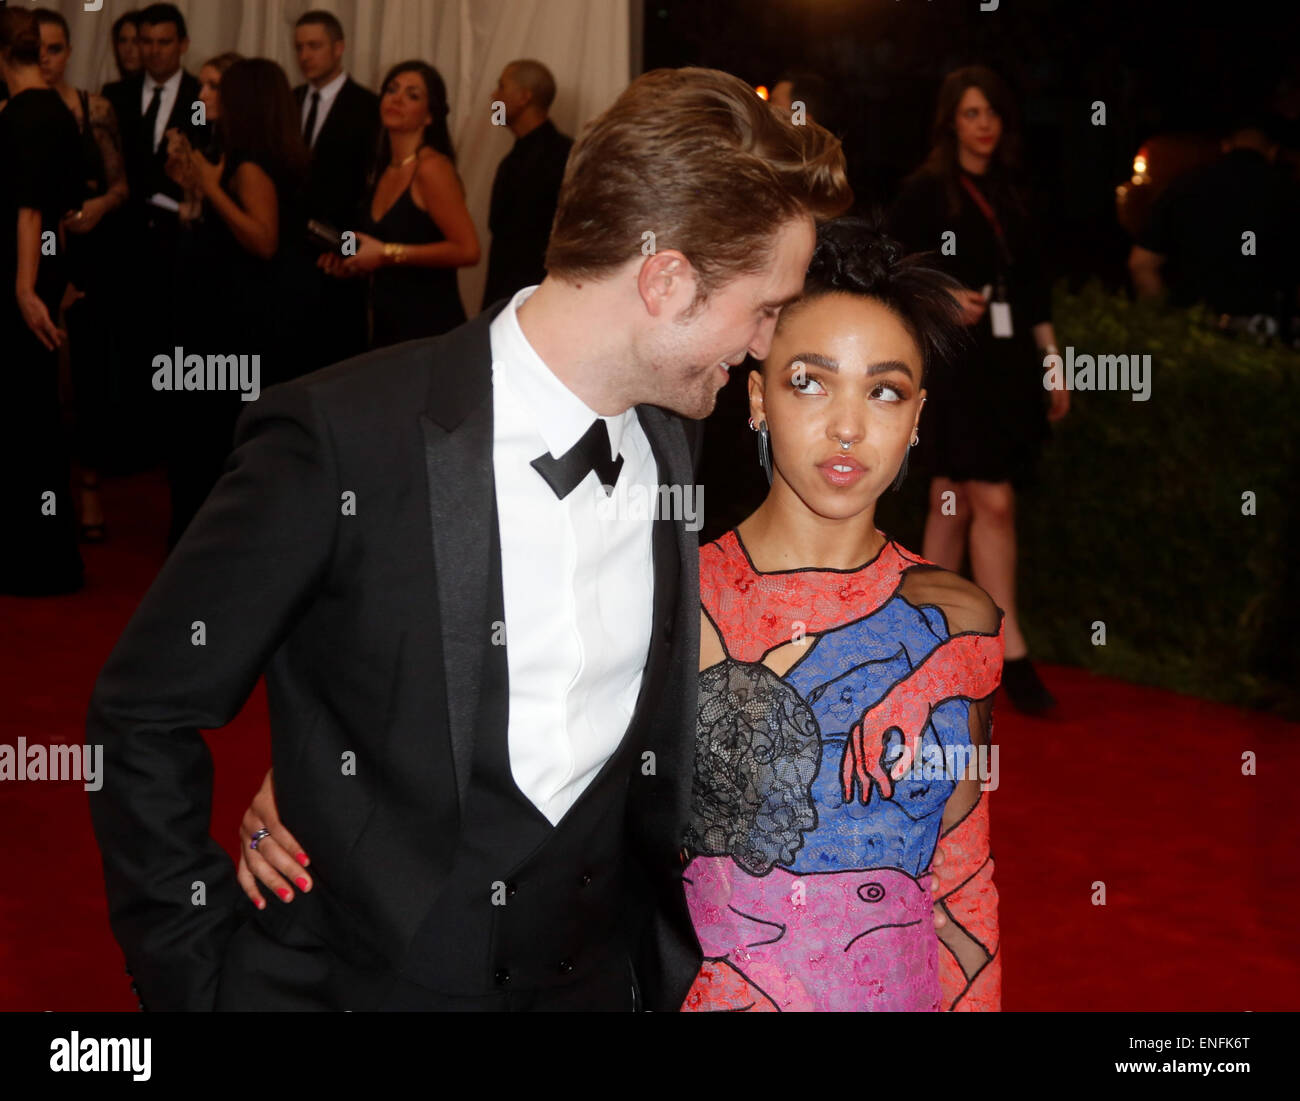 New York, USA . 4th May, 2015. British actor Robert Pattinson and singer FKA Twigs attend the 2015 Costume Institute - Stock Image